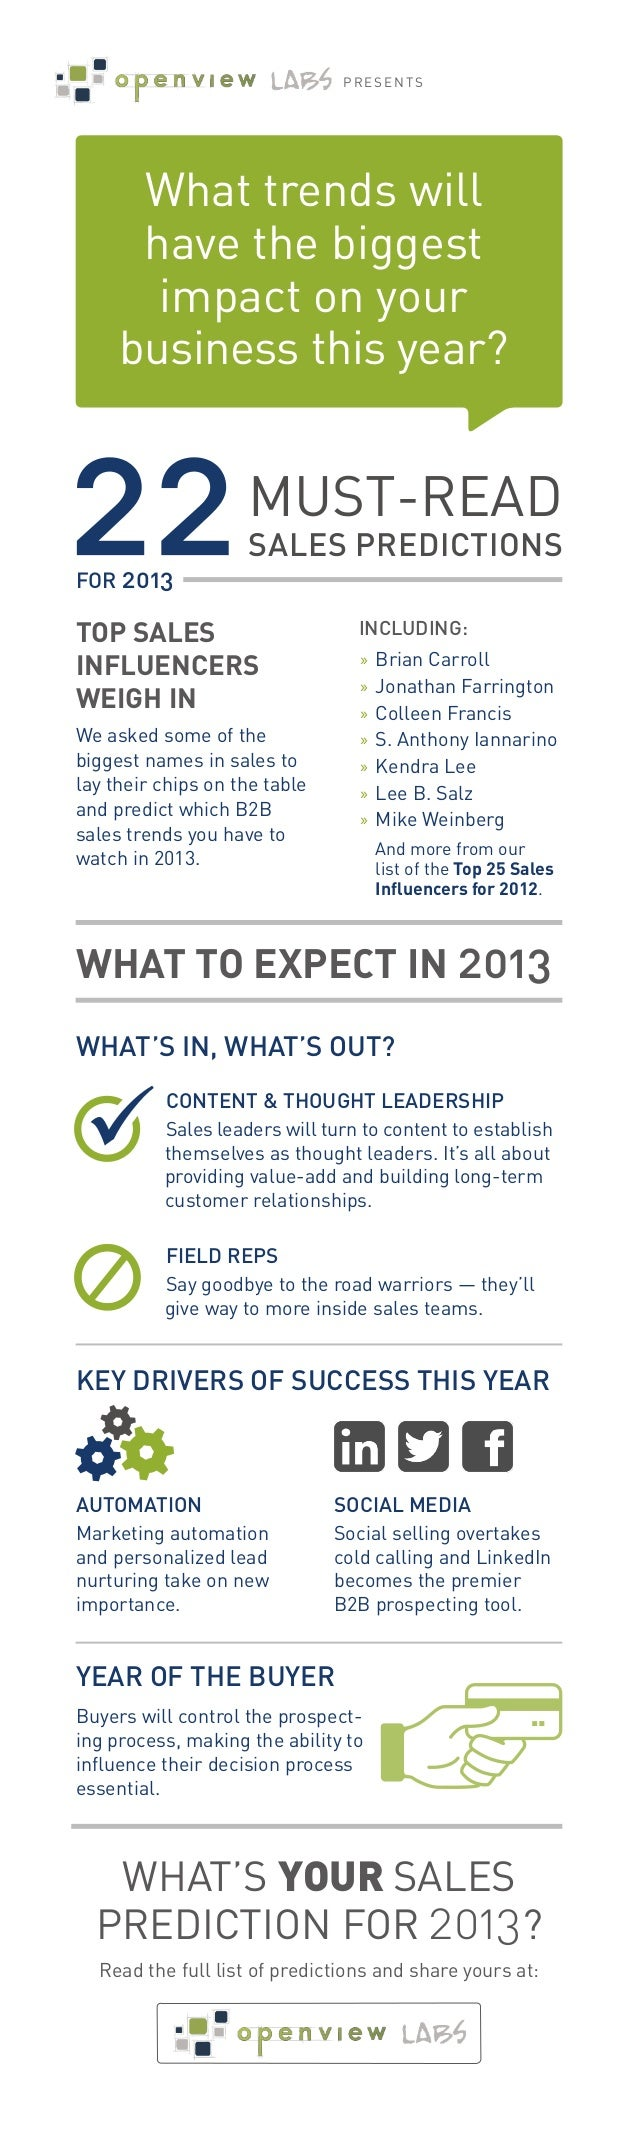 22 Must-Read Sales Predictions for 2013